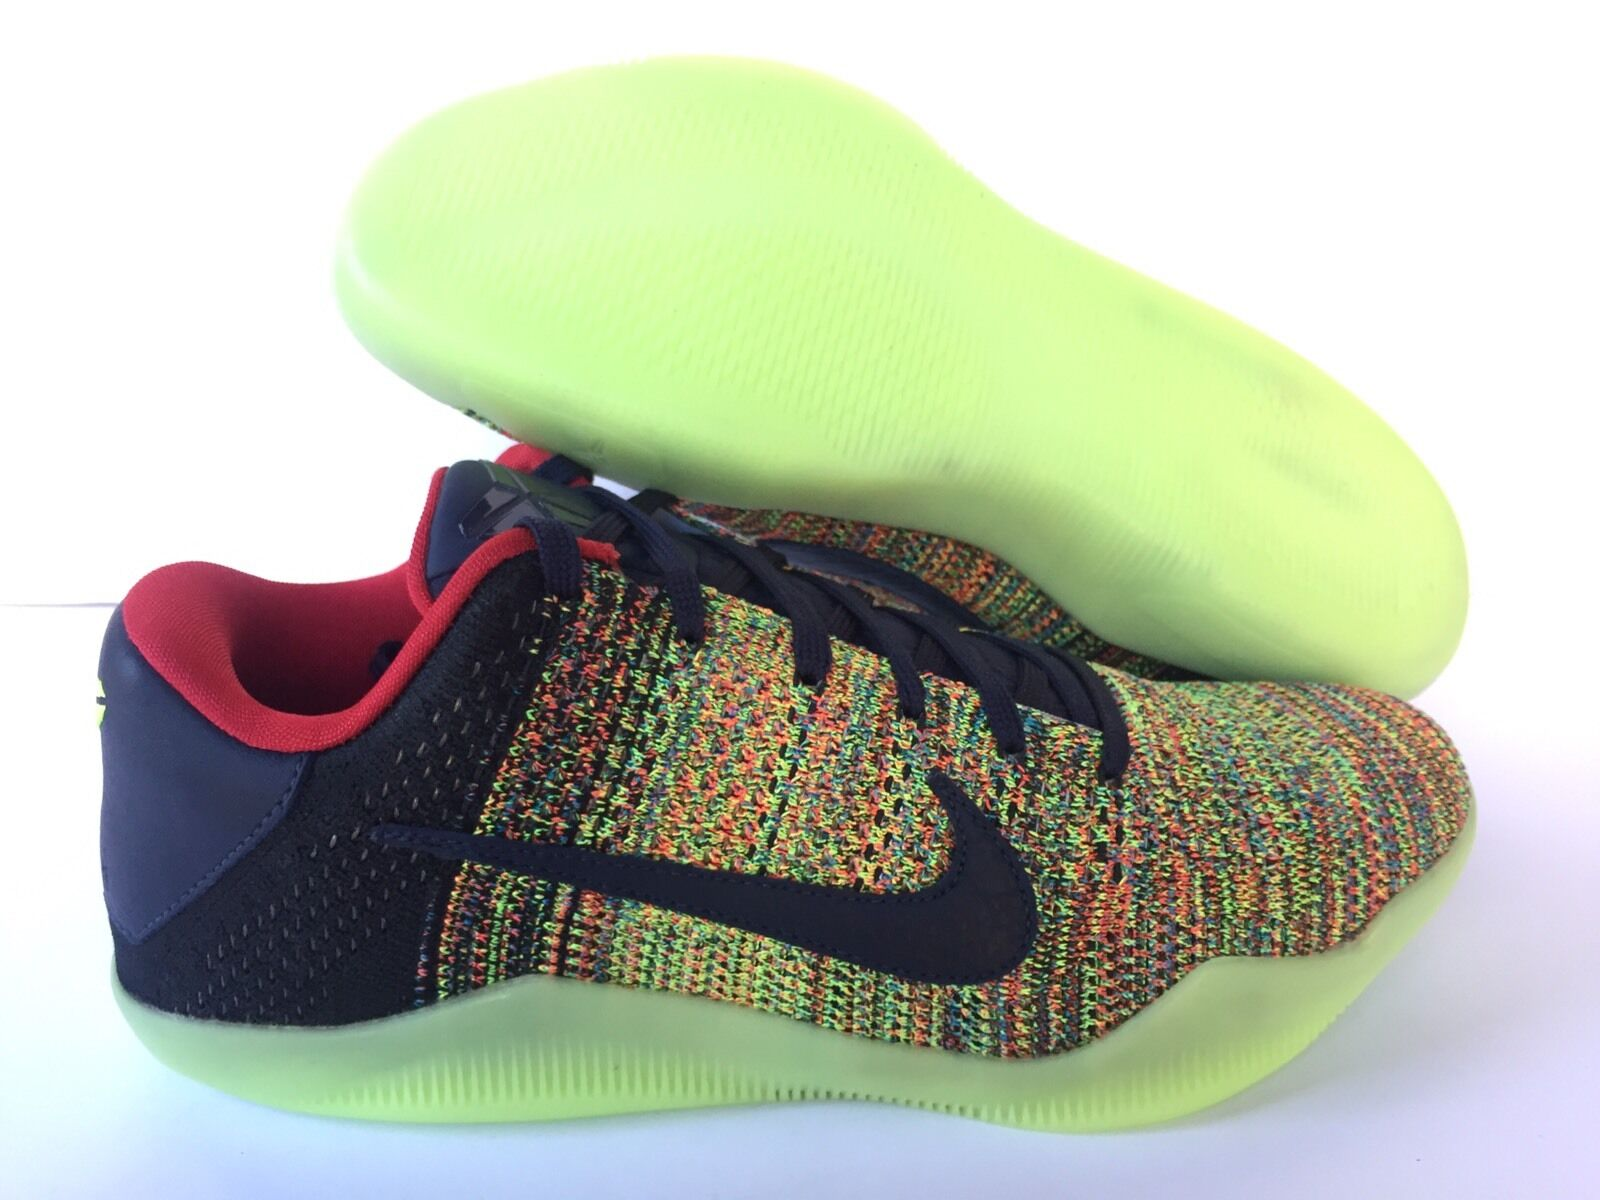 NIKEiD KOBE ELITE LOW BLACK/MULTICOLOR [ 903710-993 ] US MEN SZ 9.5